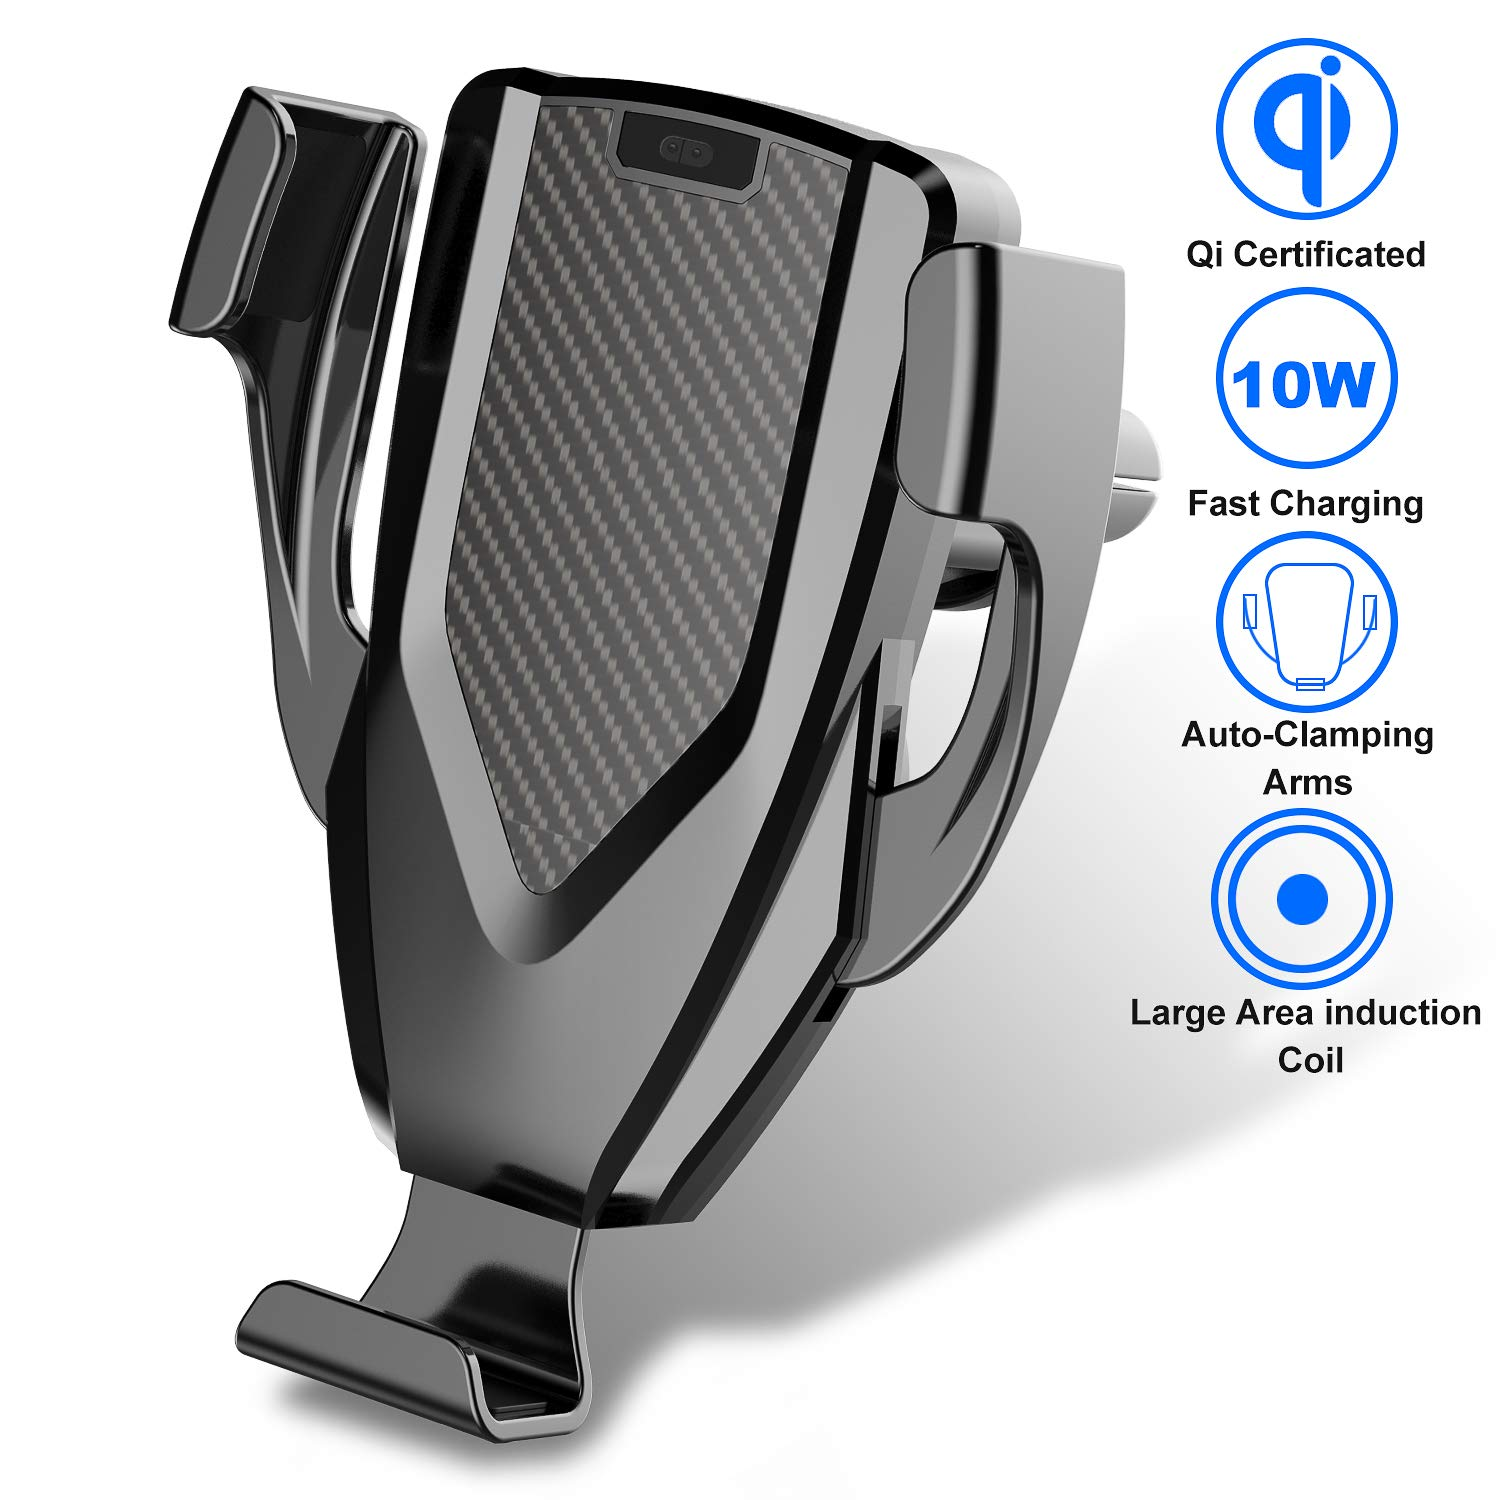 BWXJH Wireless Car Charger,Multi-Touch Auto-Clamping 10W/7.5W Qi Fast Charging Car Phone Holder for iPhone Xs/Max/X/XR/8/8 Plus,Samsung Note 9/ S9/ S9+/S8/S10/S10+/S10e (Air Vent Mount)